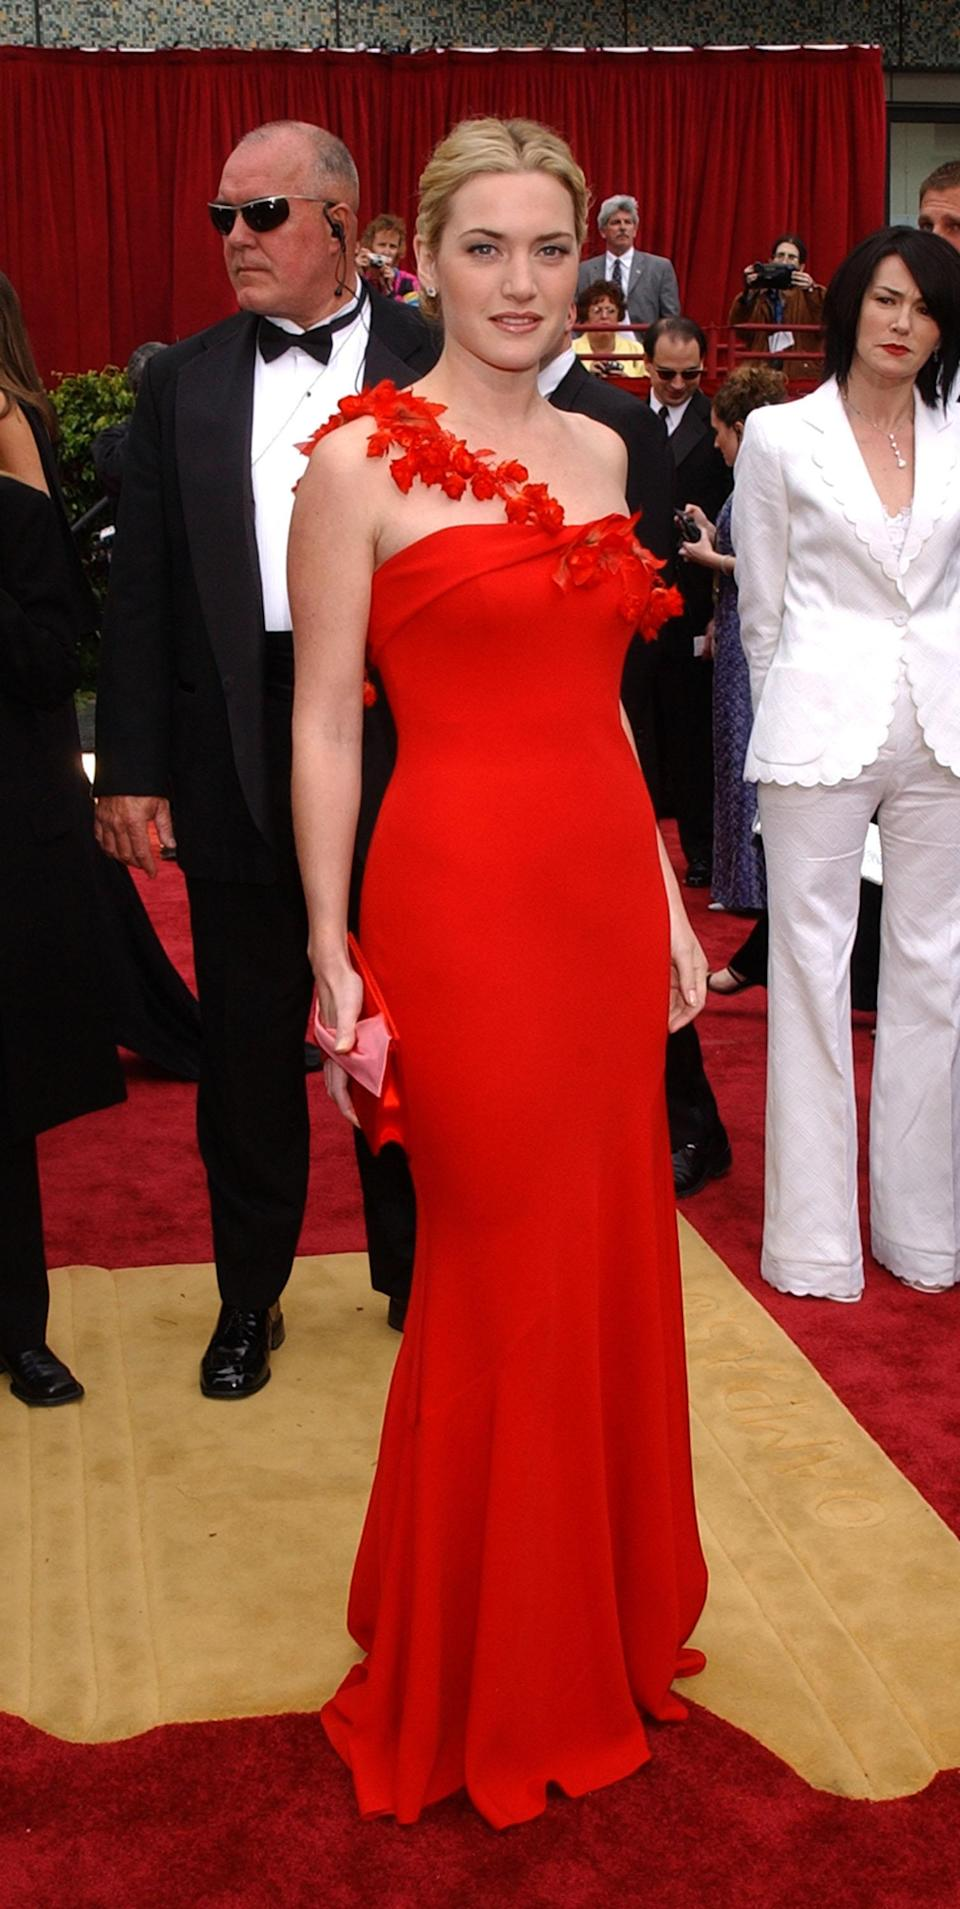 In 2012, Kate Winslet matched the red carpet in a Ben de Lisi gown. The flattering design featured a floral strap and a slightly flared skirt.